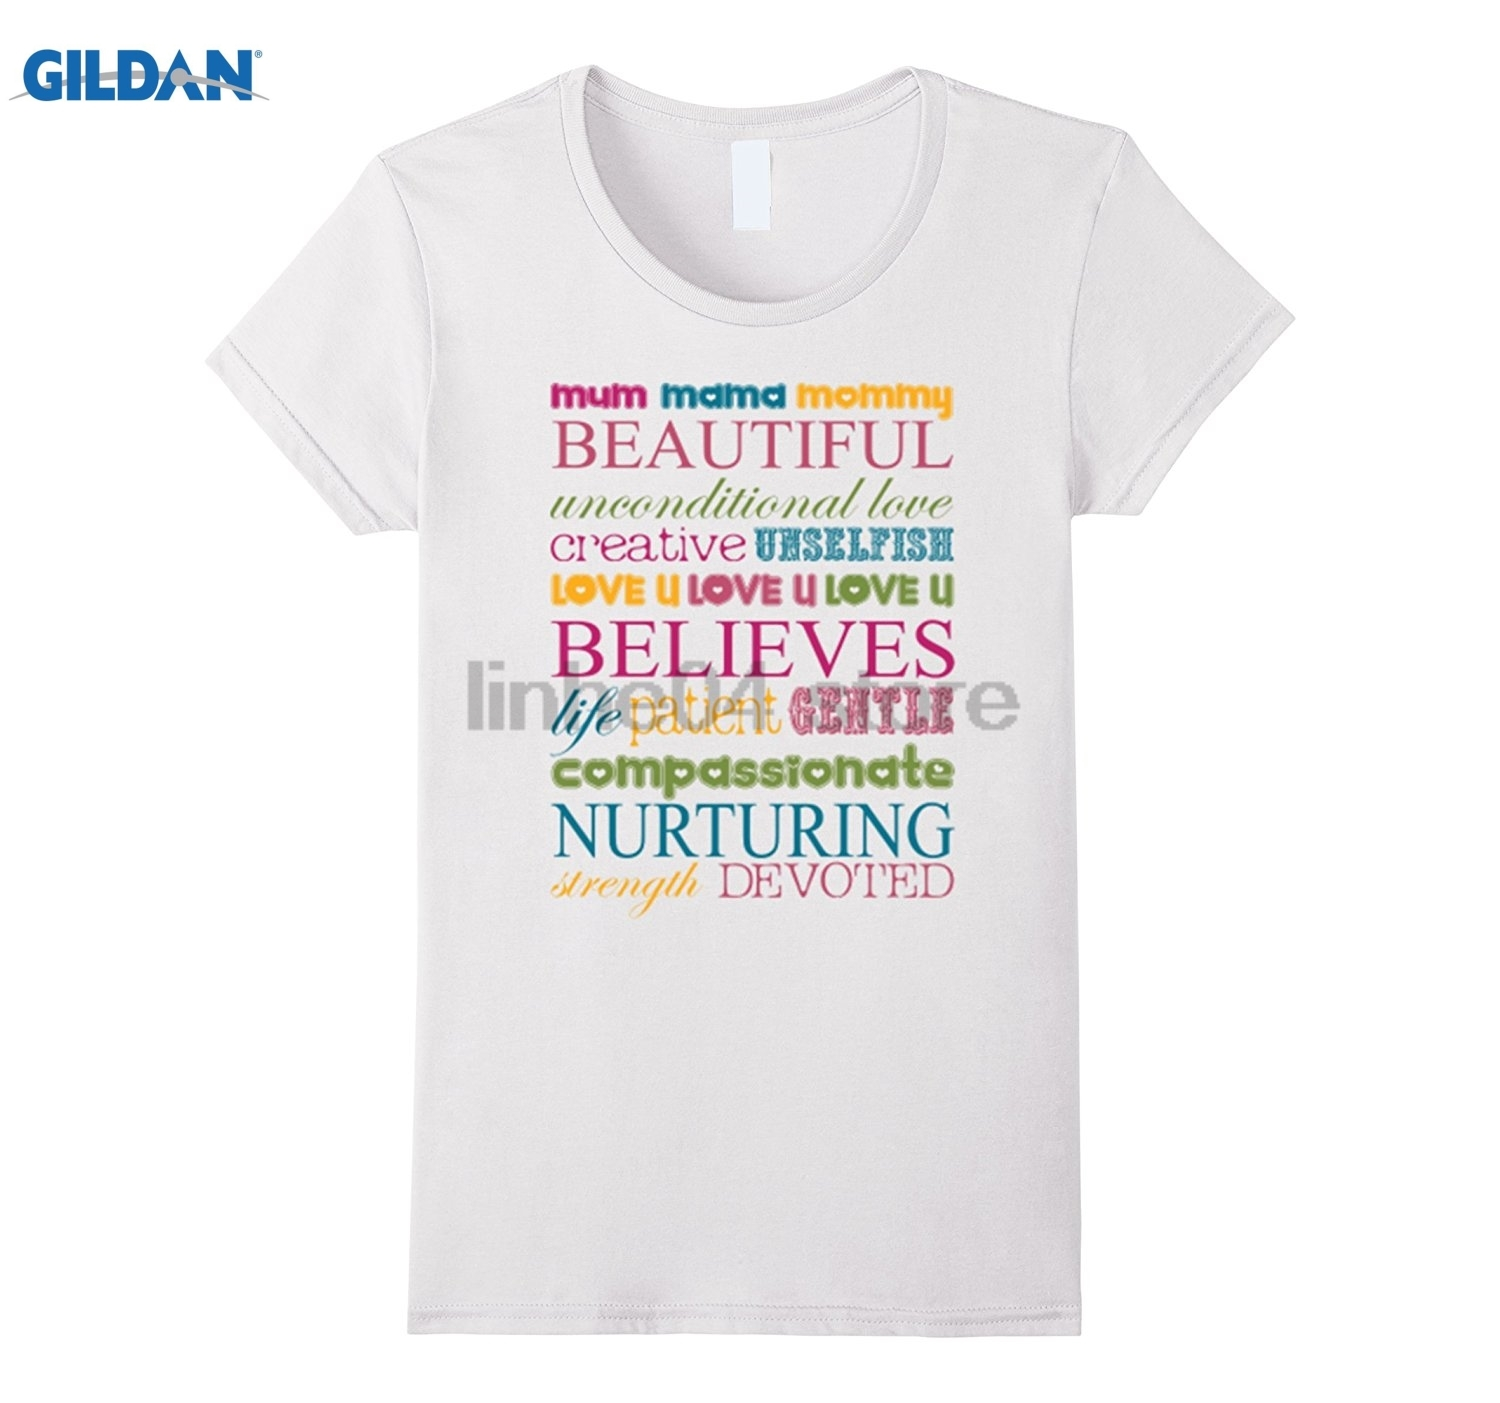 GILDAN Womens Mothers Day Gift Mum Mama Mommy Beautyful T-shirt Dress female T-shirt